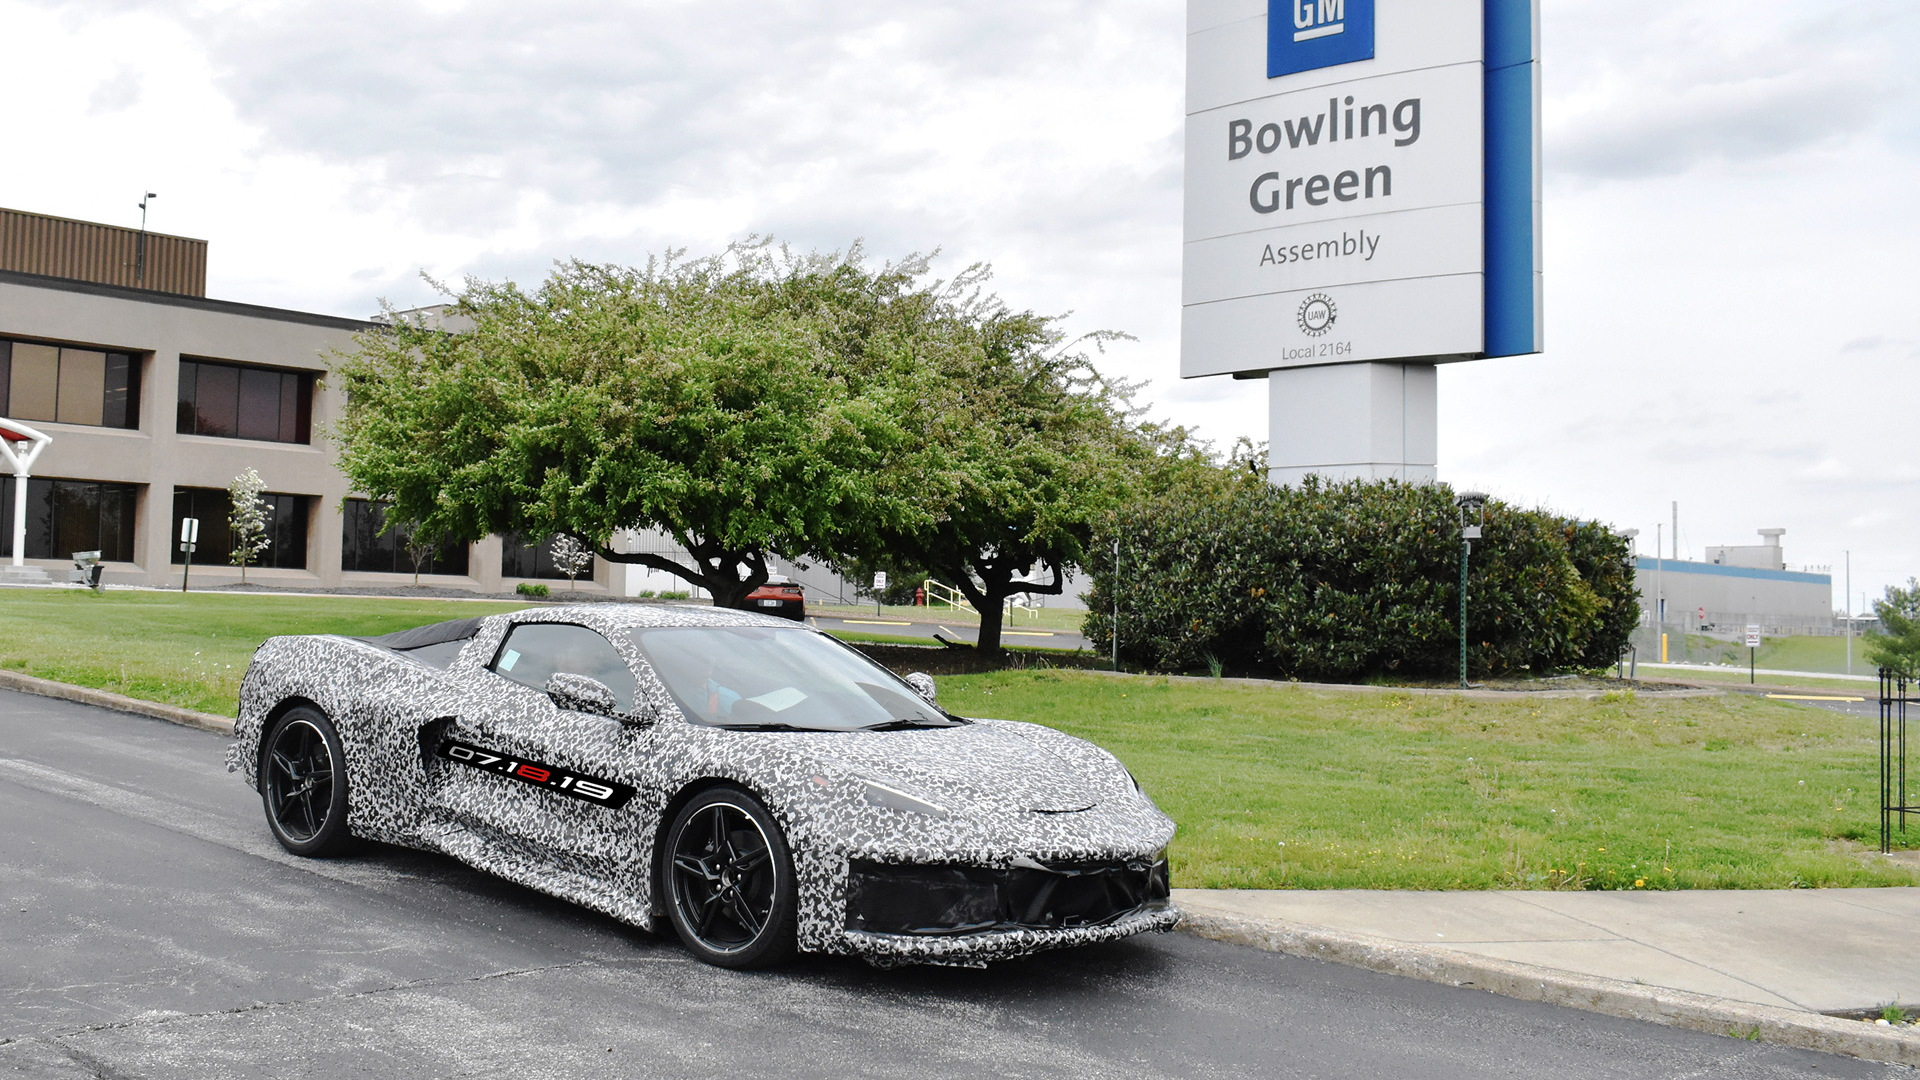 2020 Chevrolet Corvette prototype at Bowling Green Assembly plant